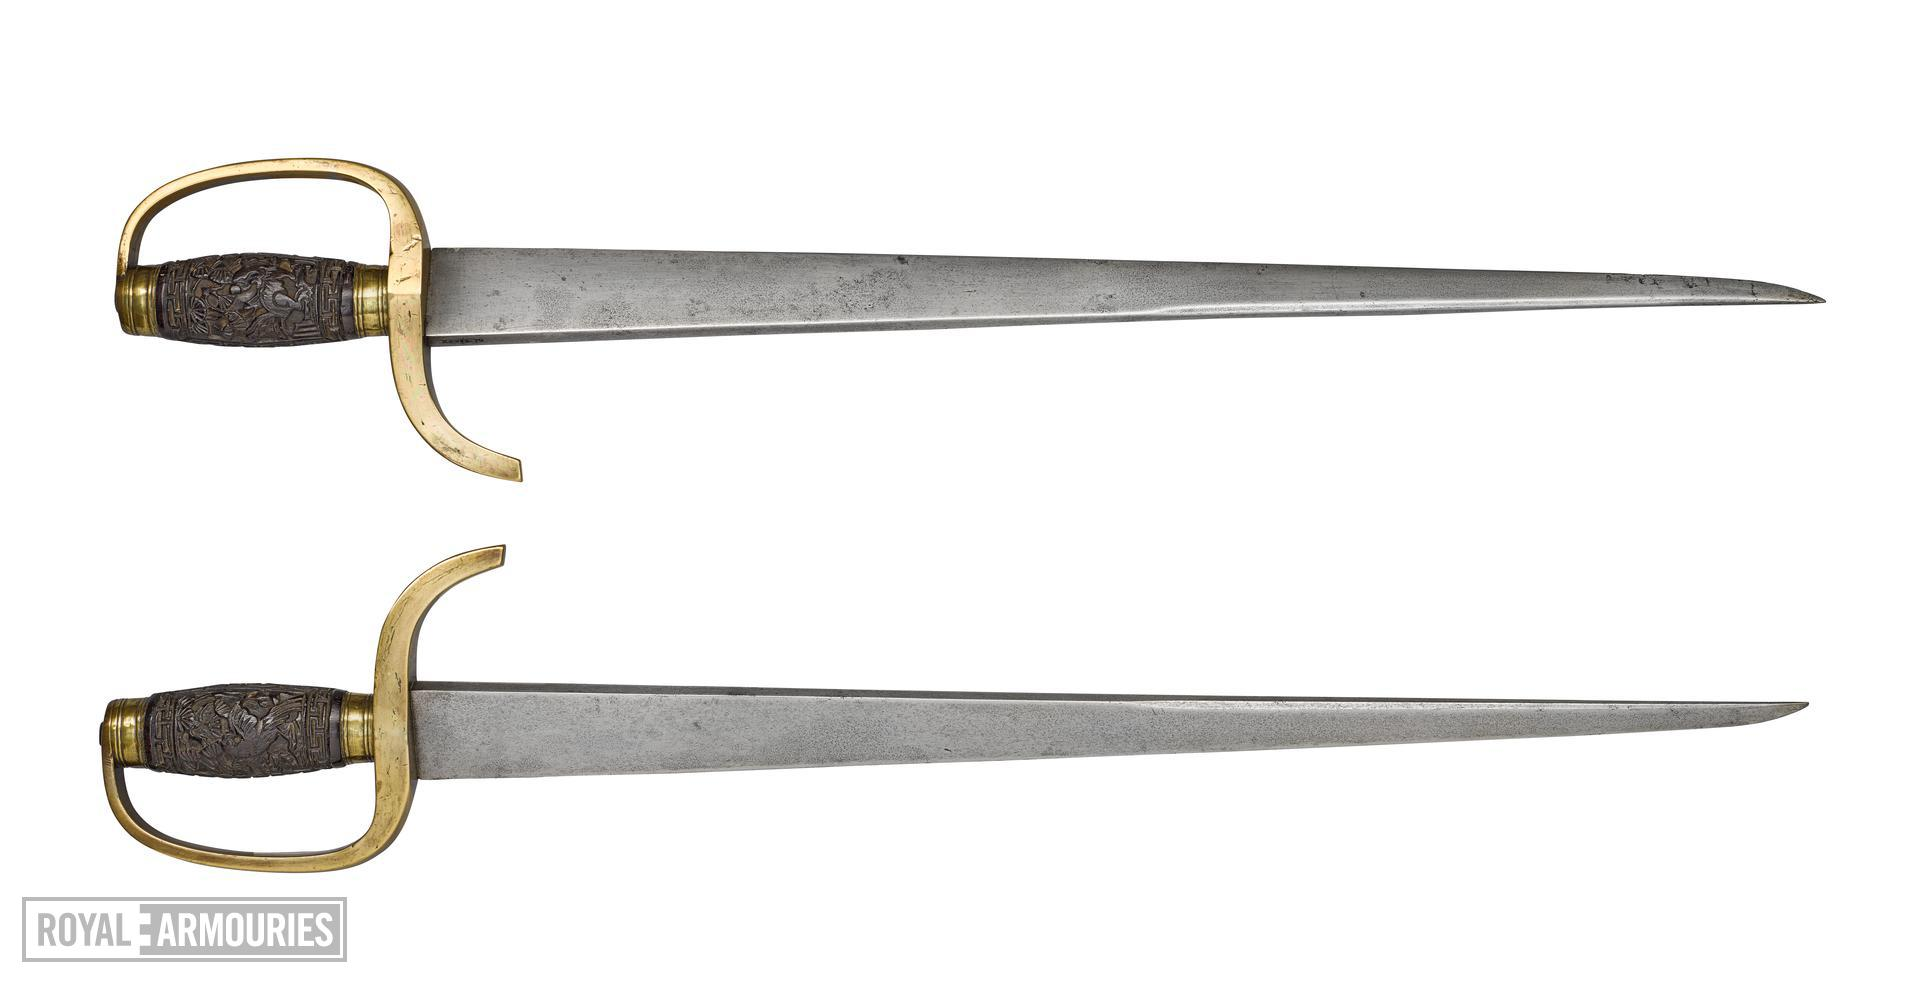 Pair of butterfly knives (hodiedao) XXVIS.70